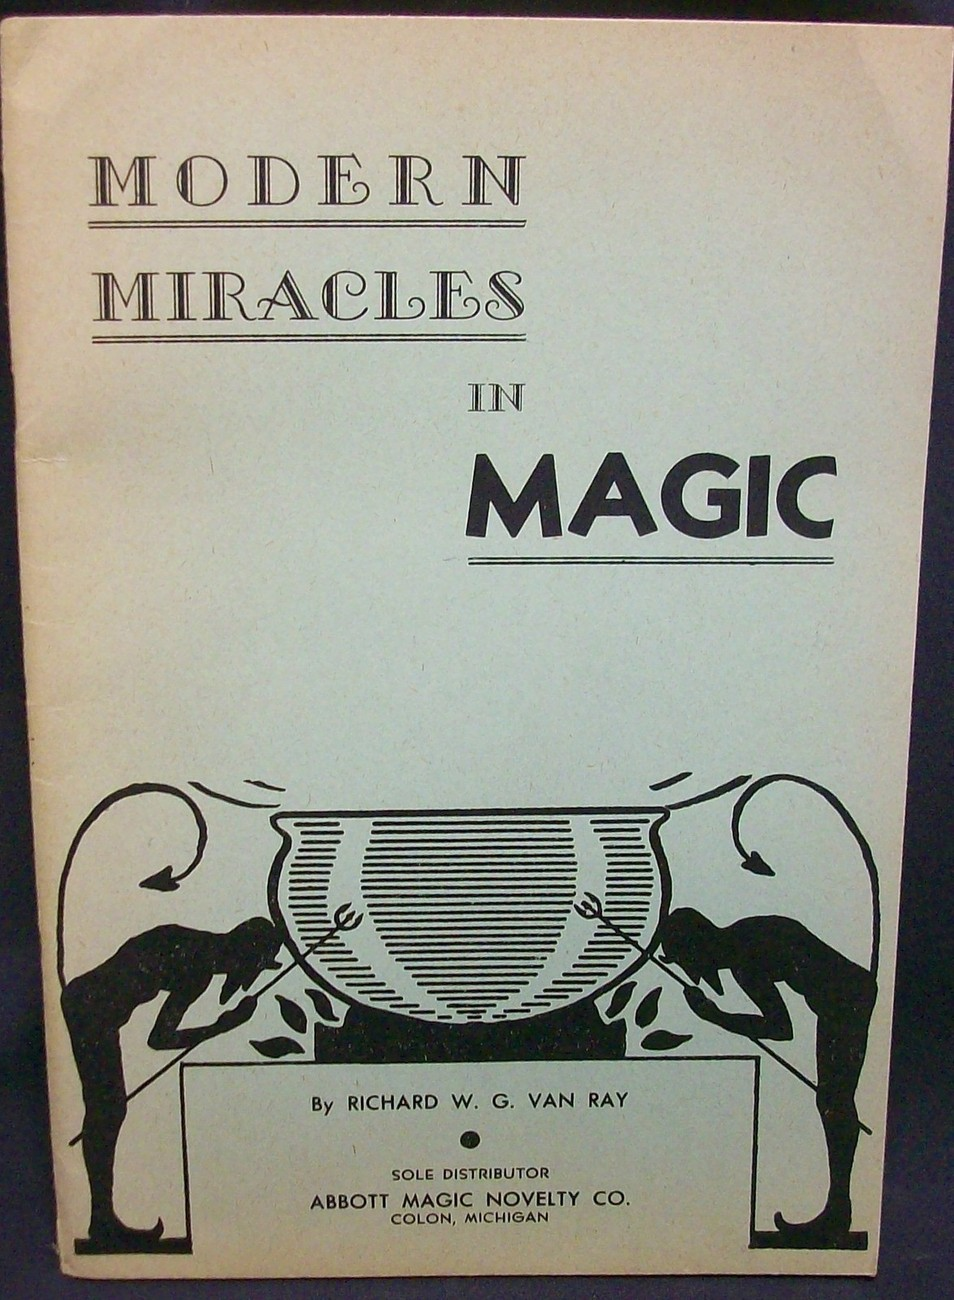 Primary image for Modern Miracles in Magic by Van Ray, Richard